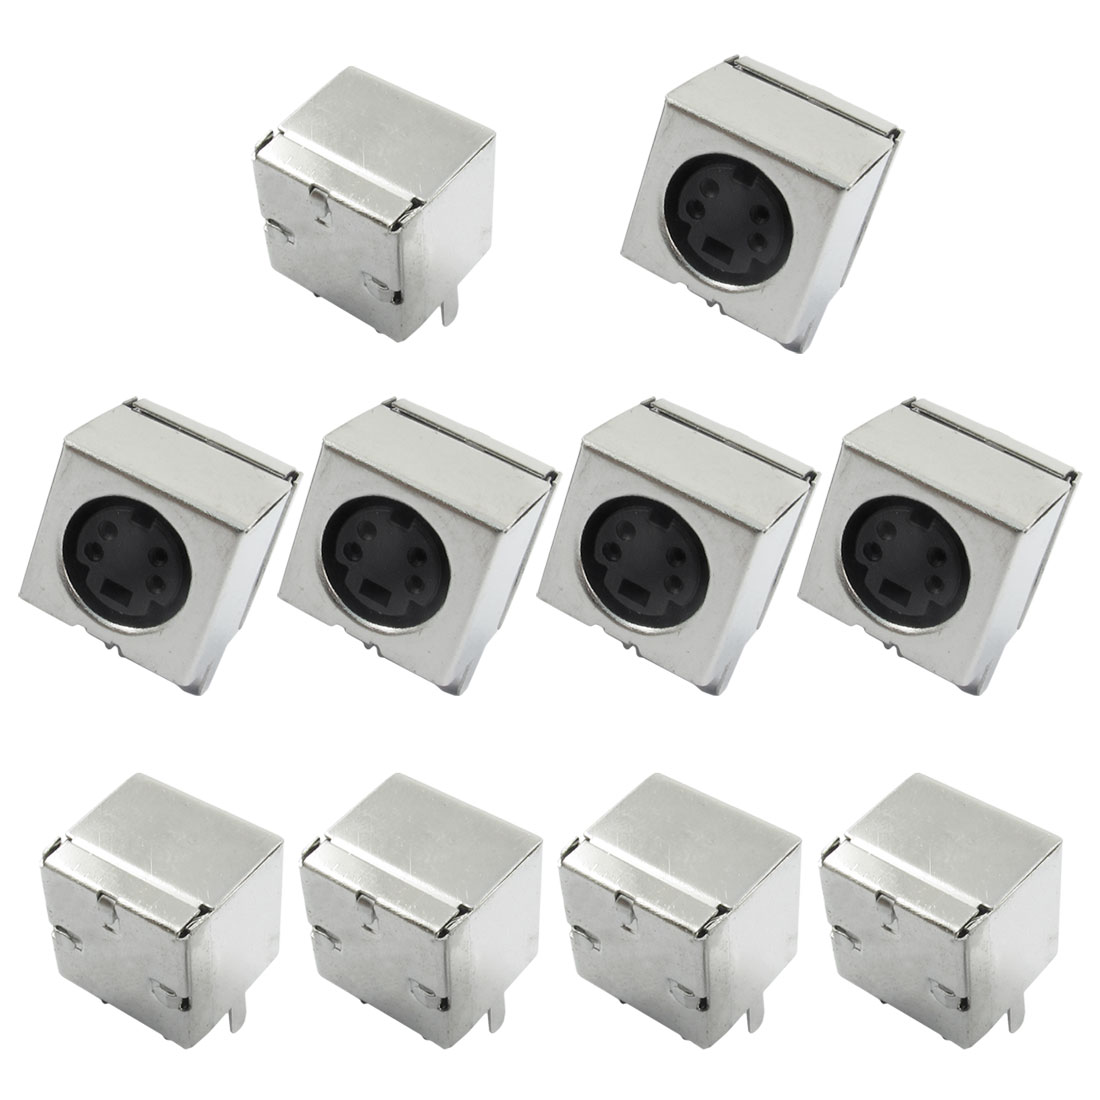 10 Pcs Power DIN 4 Pin Right Angle Board Jack Connector